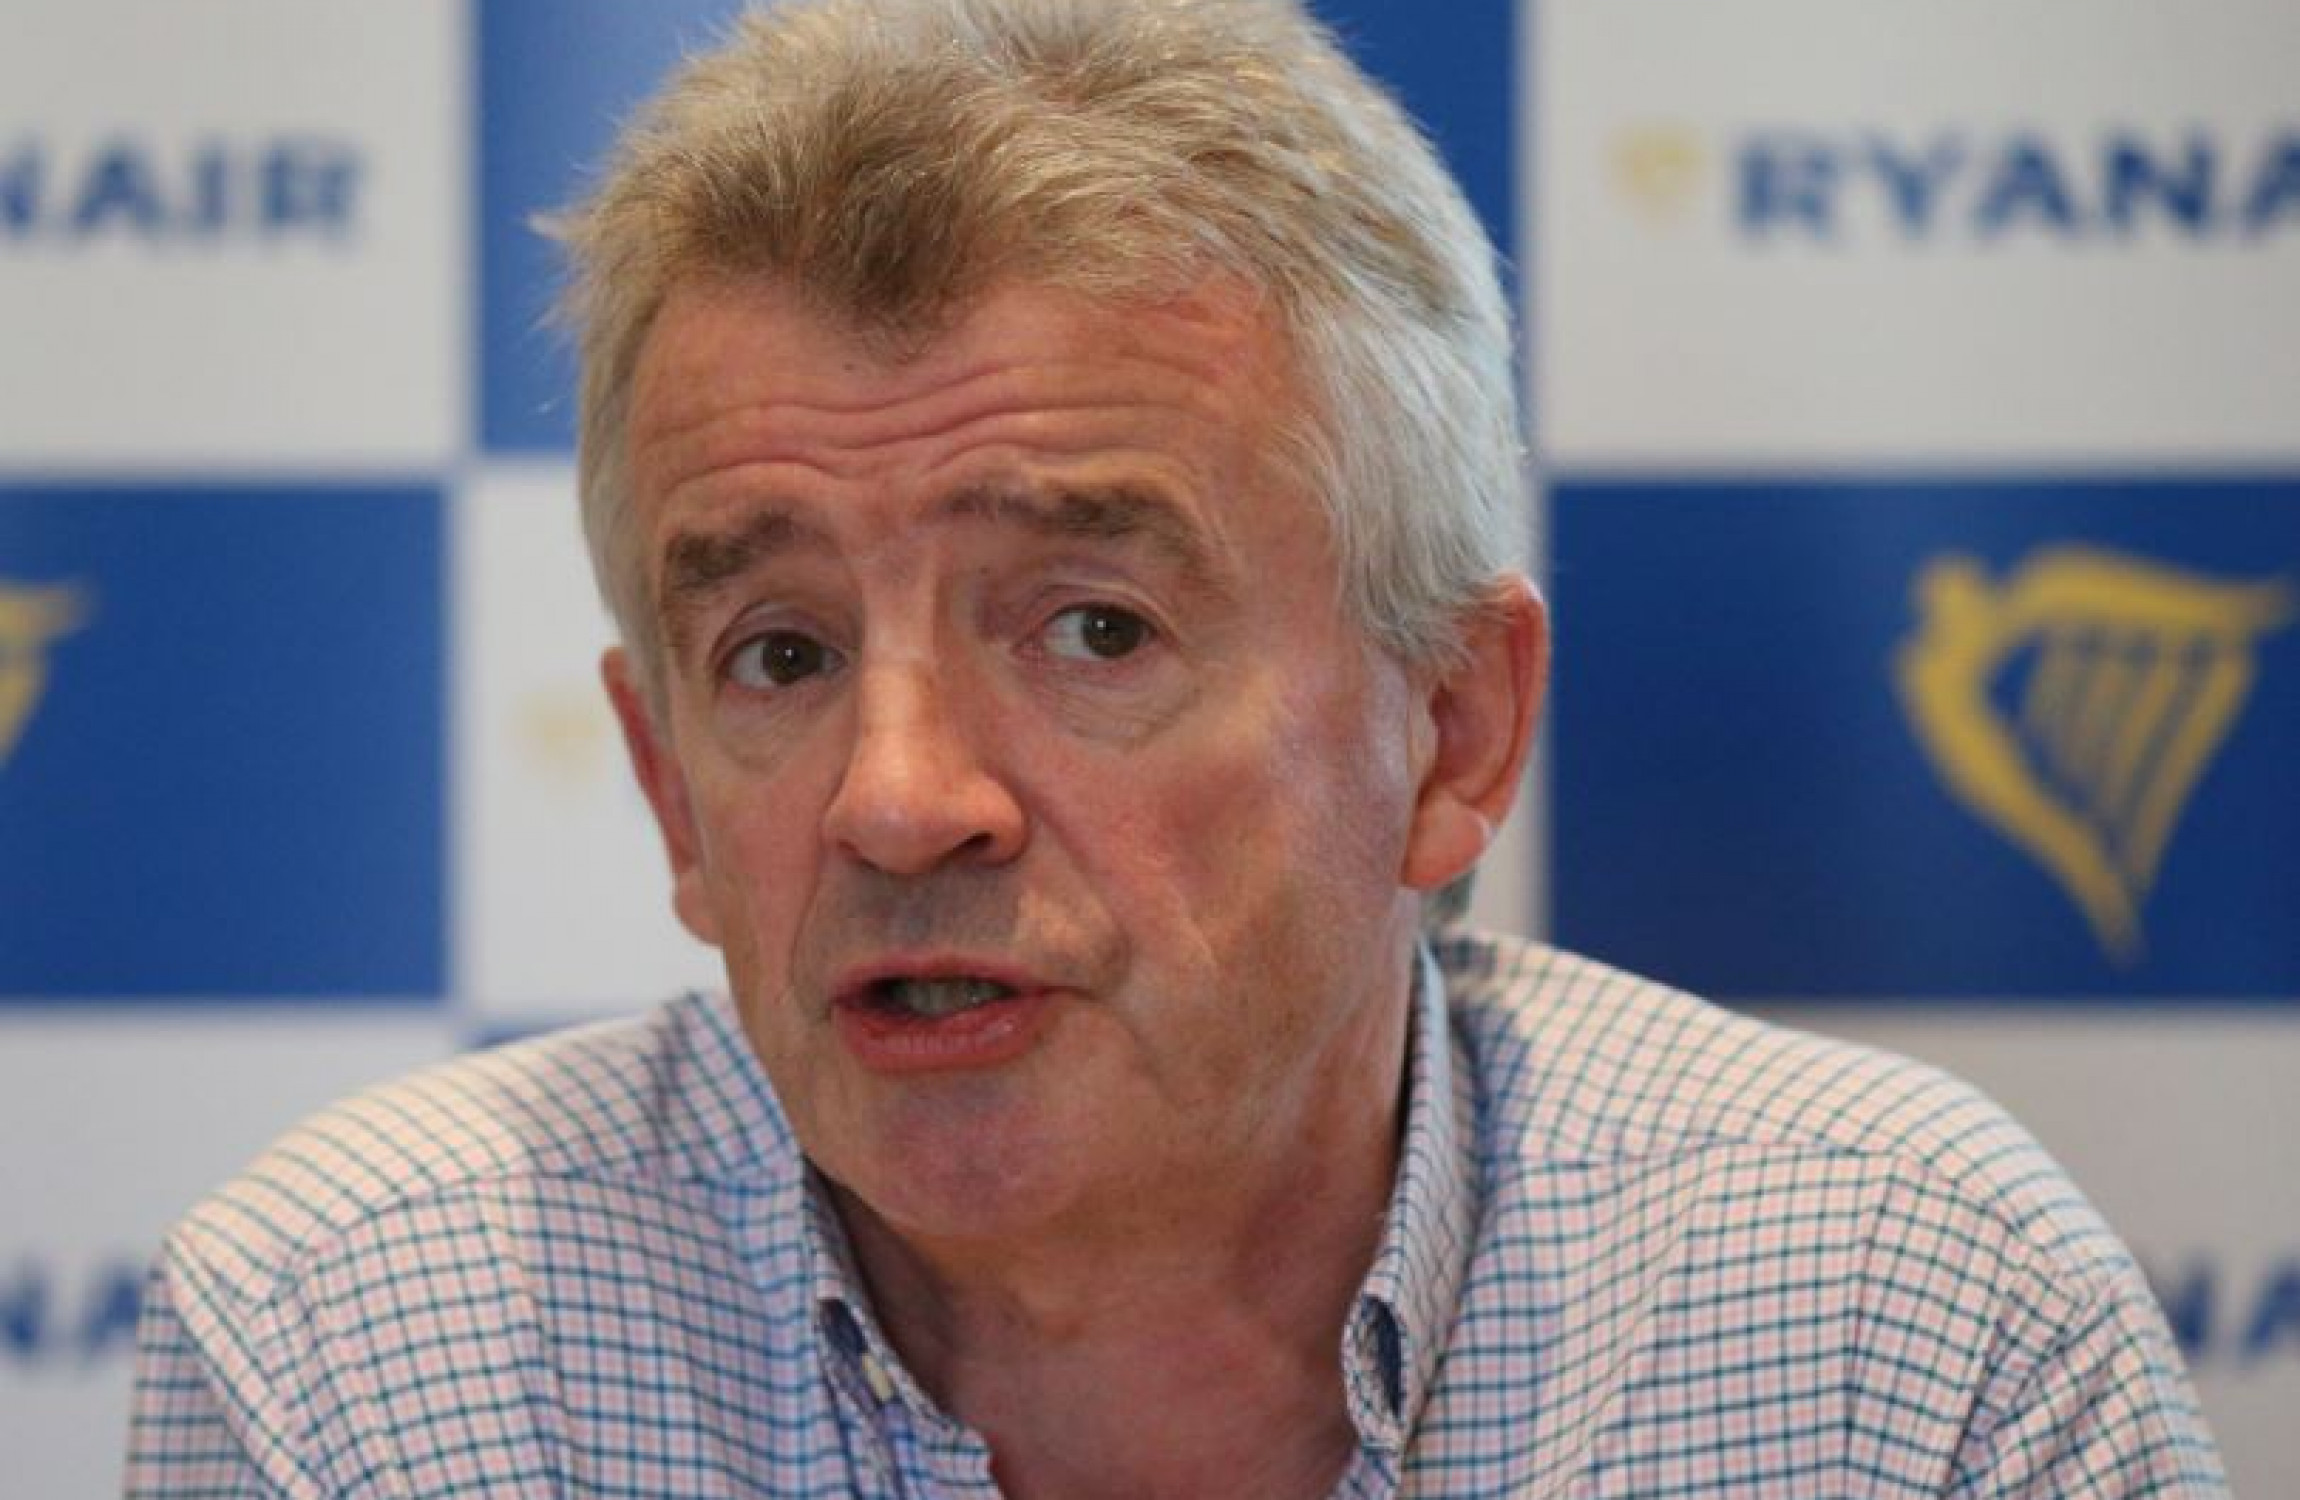 Crew holiday backlog sees Ryanair cancel 50 flights a day until November